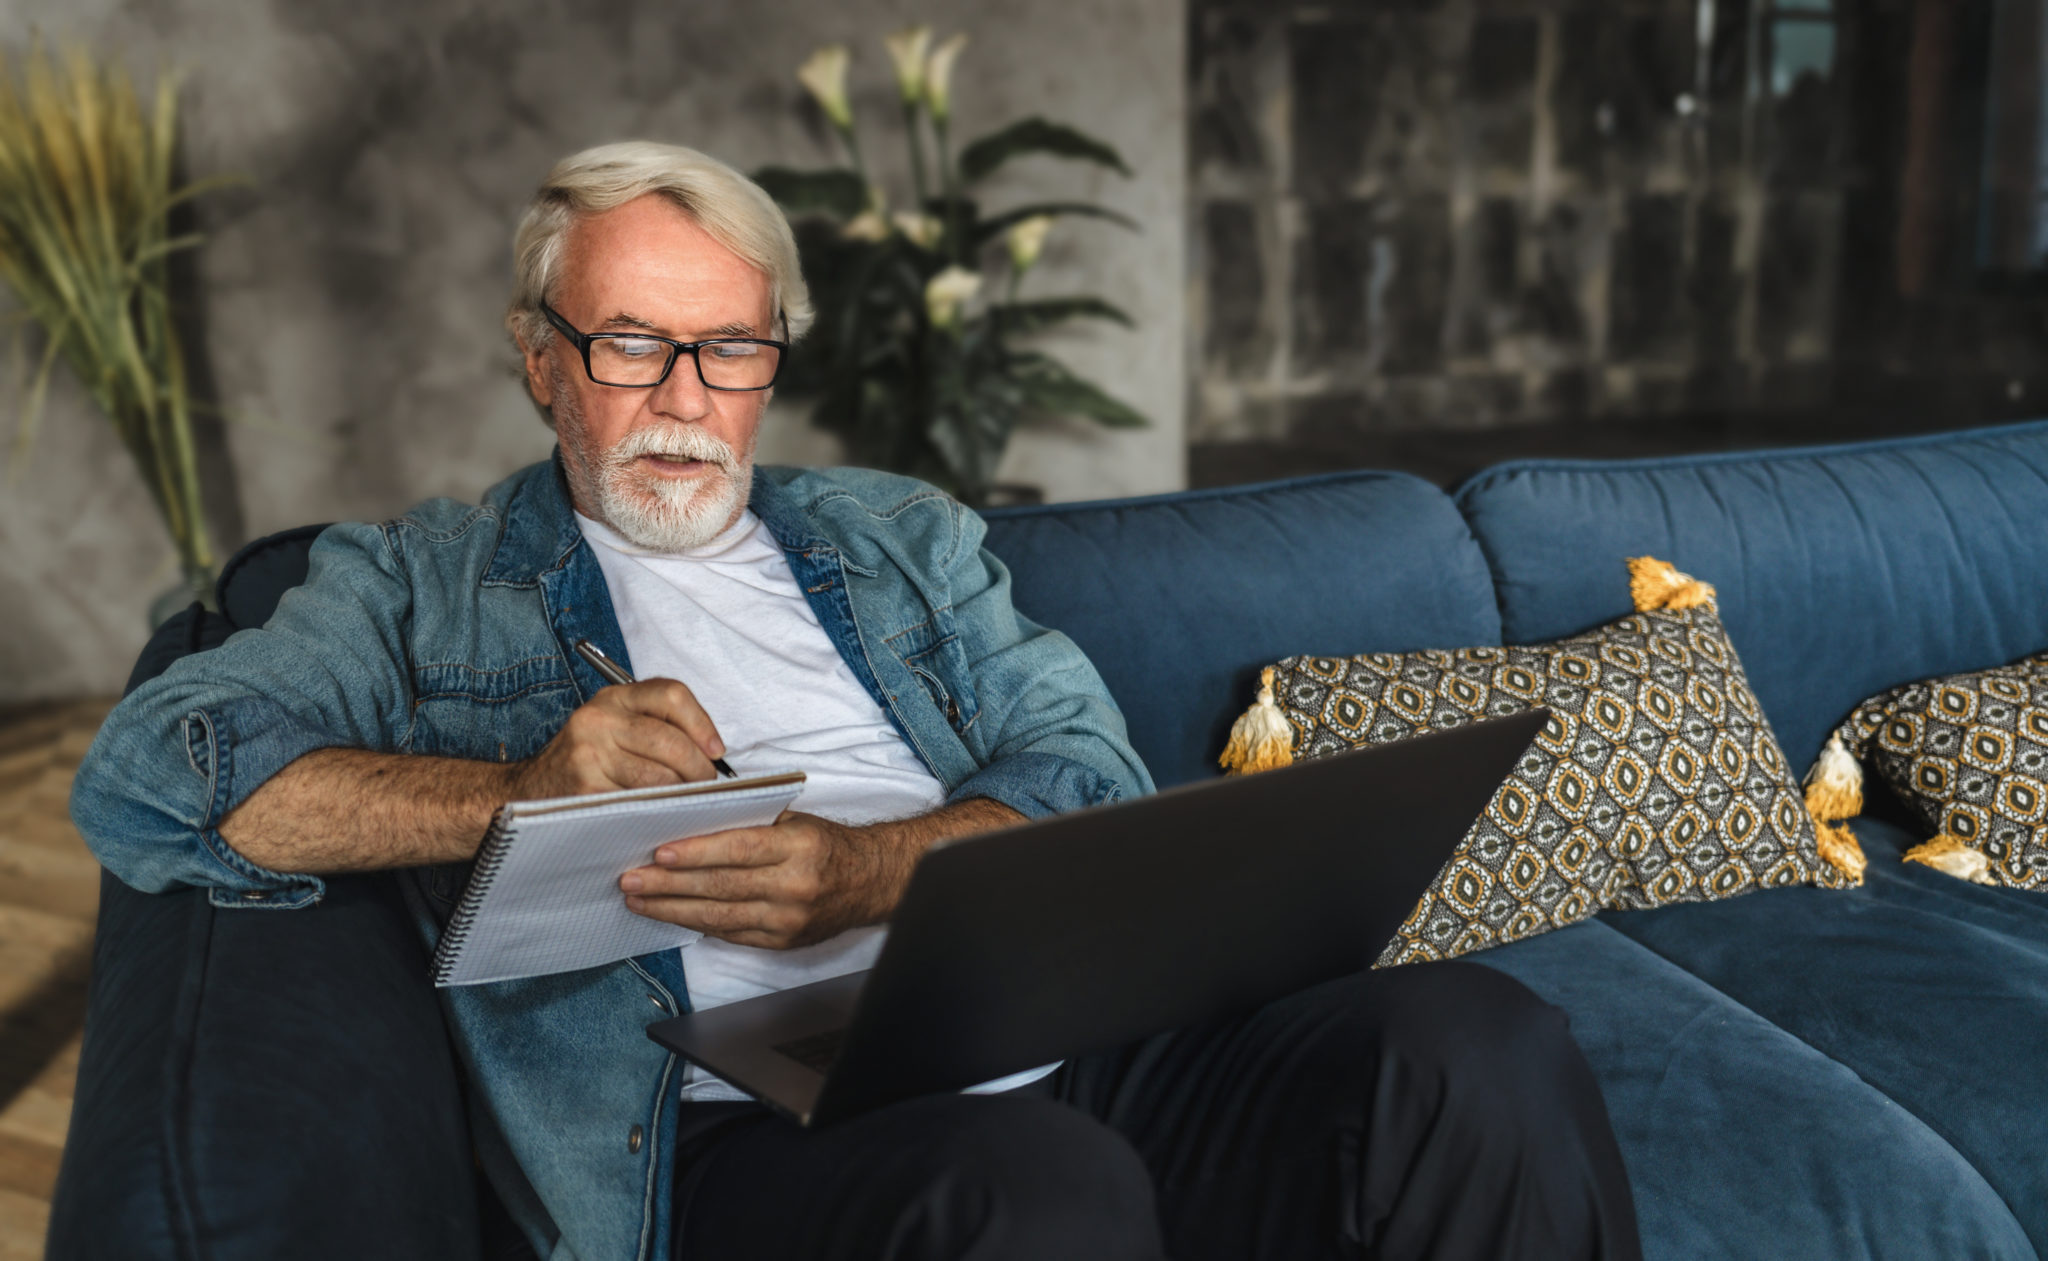 Focused elderly man writing notes in notebook watching webinar or online training using laptop computer, modern senior male with gray hair and beard learning online